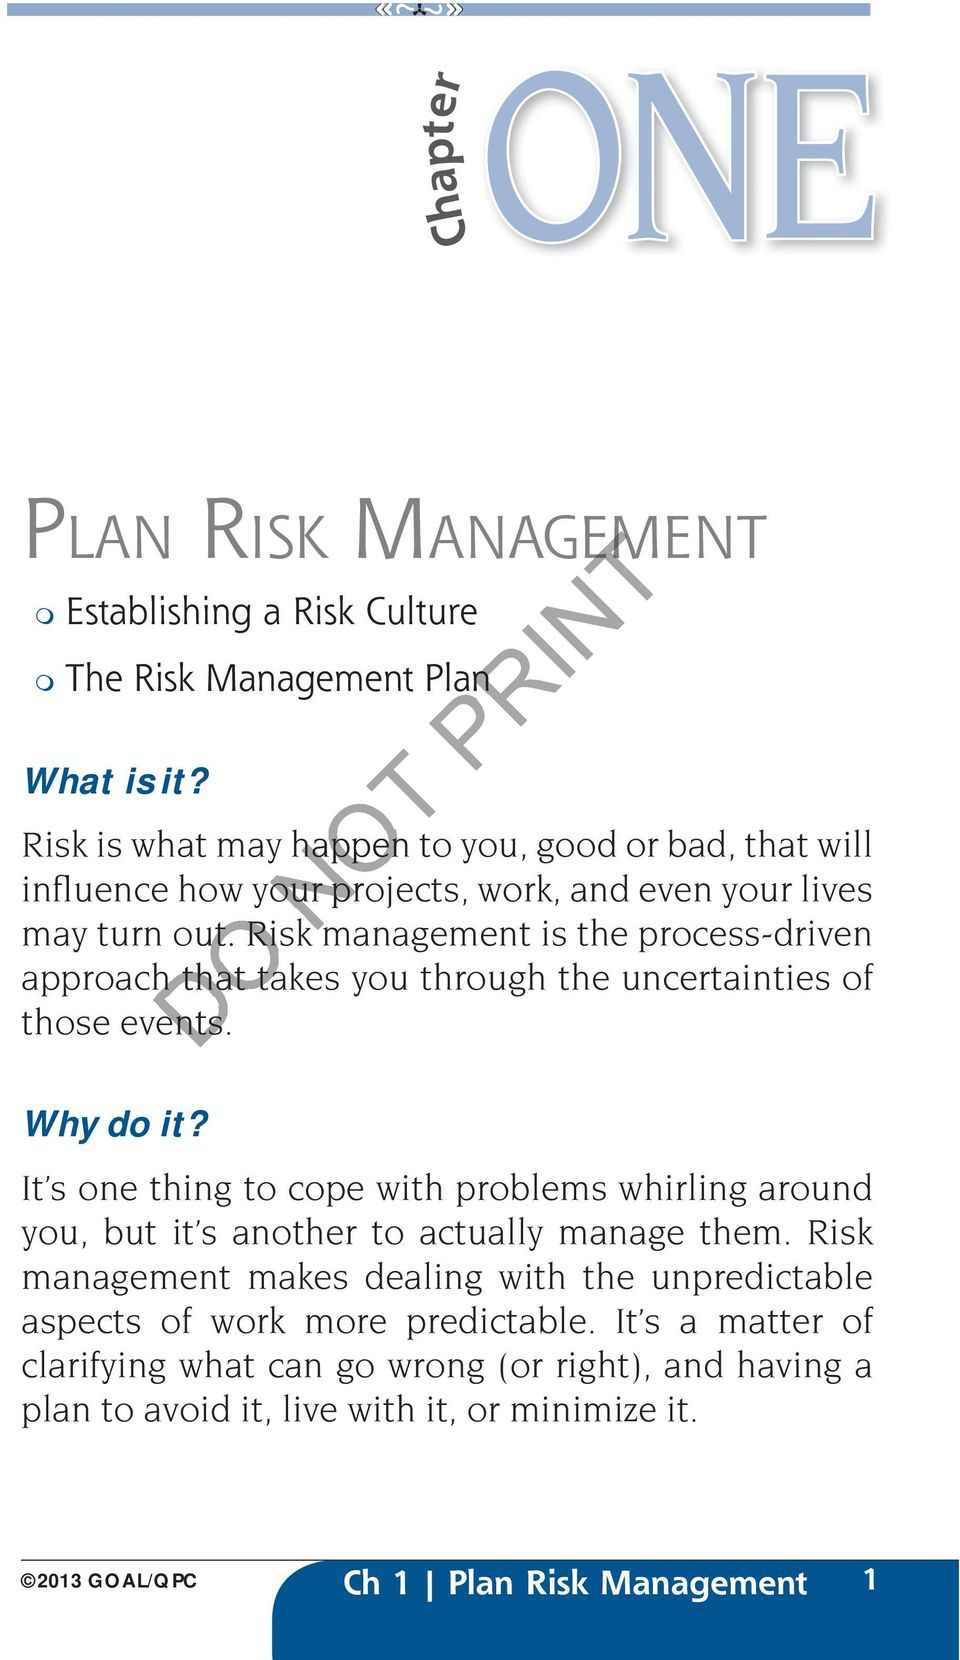 Risk kmanagement is the process-driven approach that takes you through the uncertainties of those events. ents. Why do it?